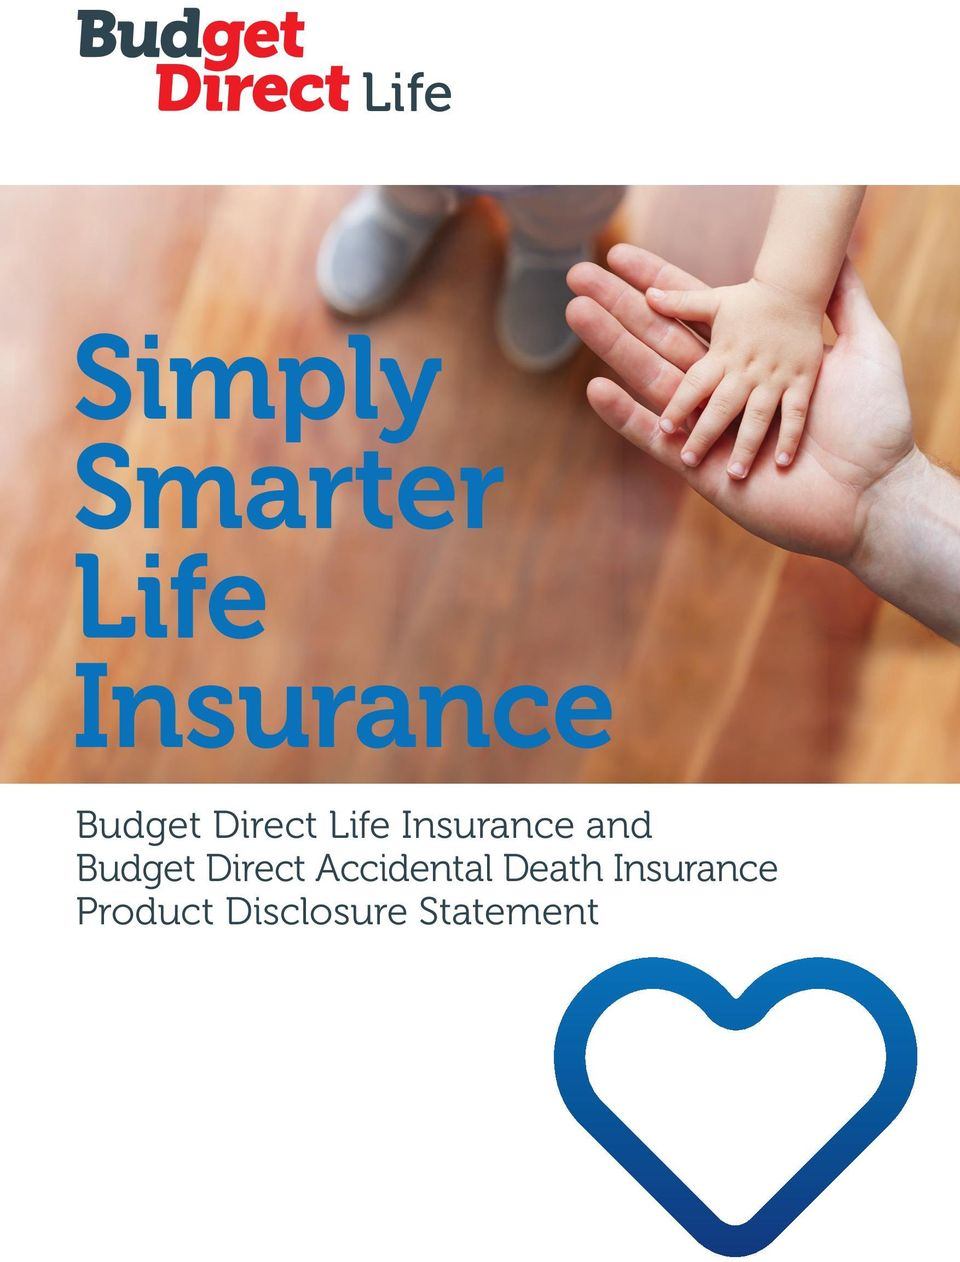 Budget Direct Accidental Death